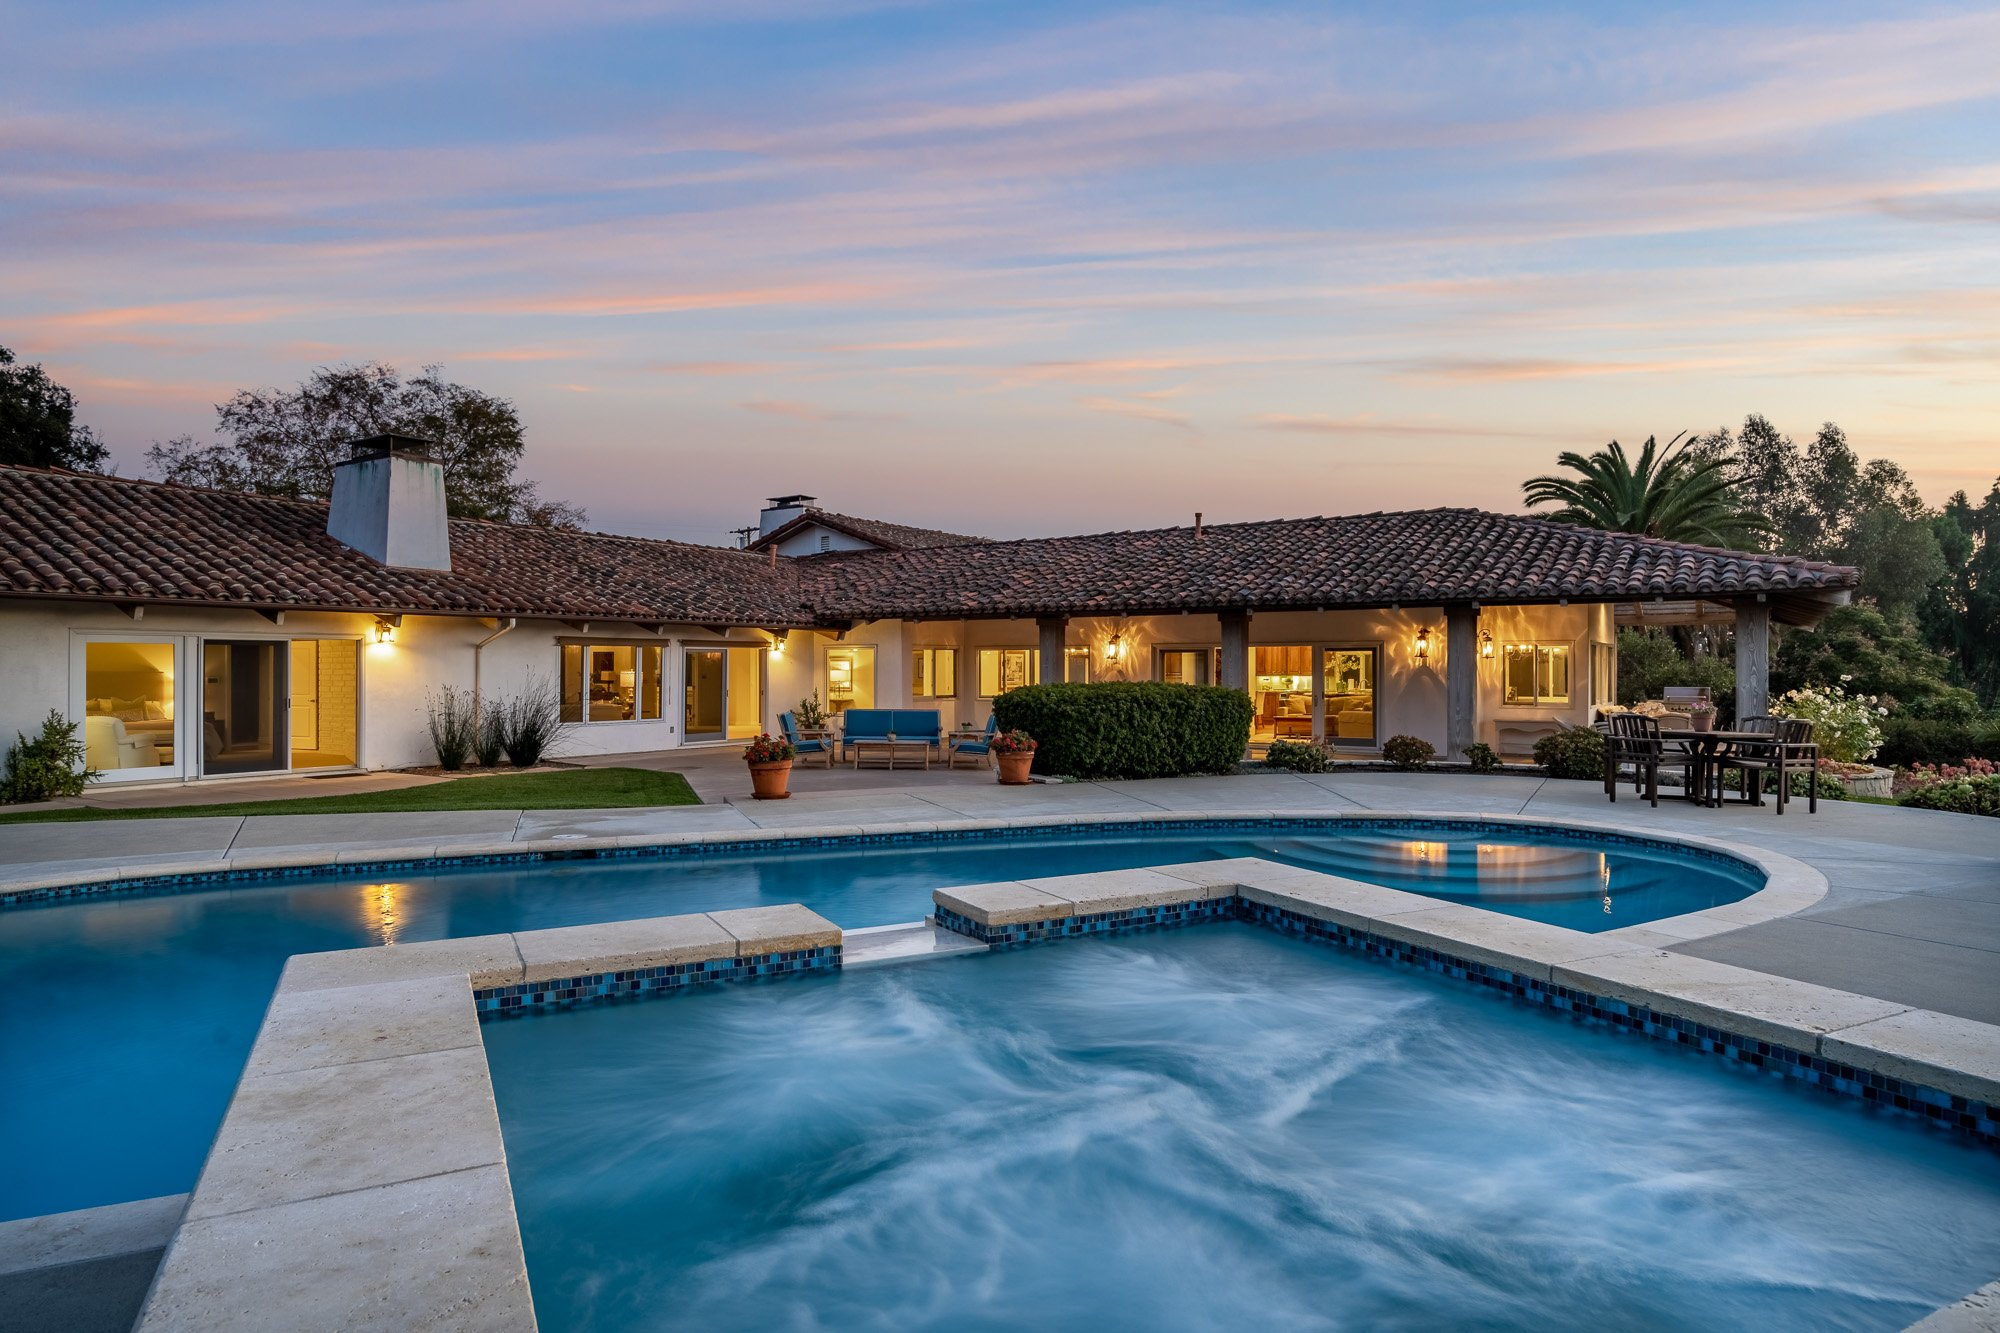 Sold 2021 Laura Represented Seller -  Rancho Santa Fe, CA 92067